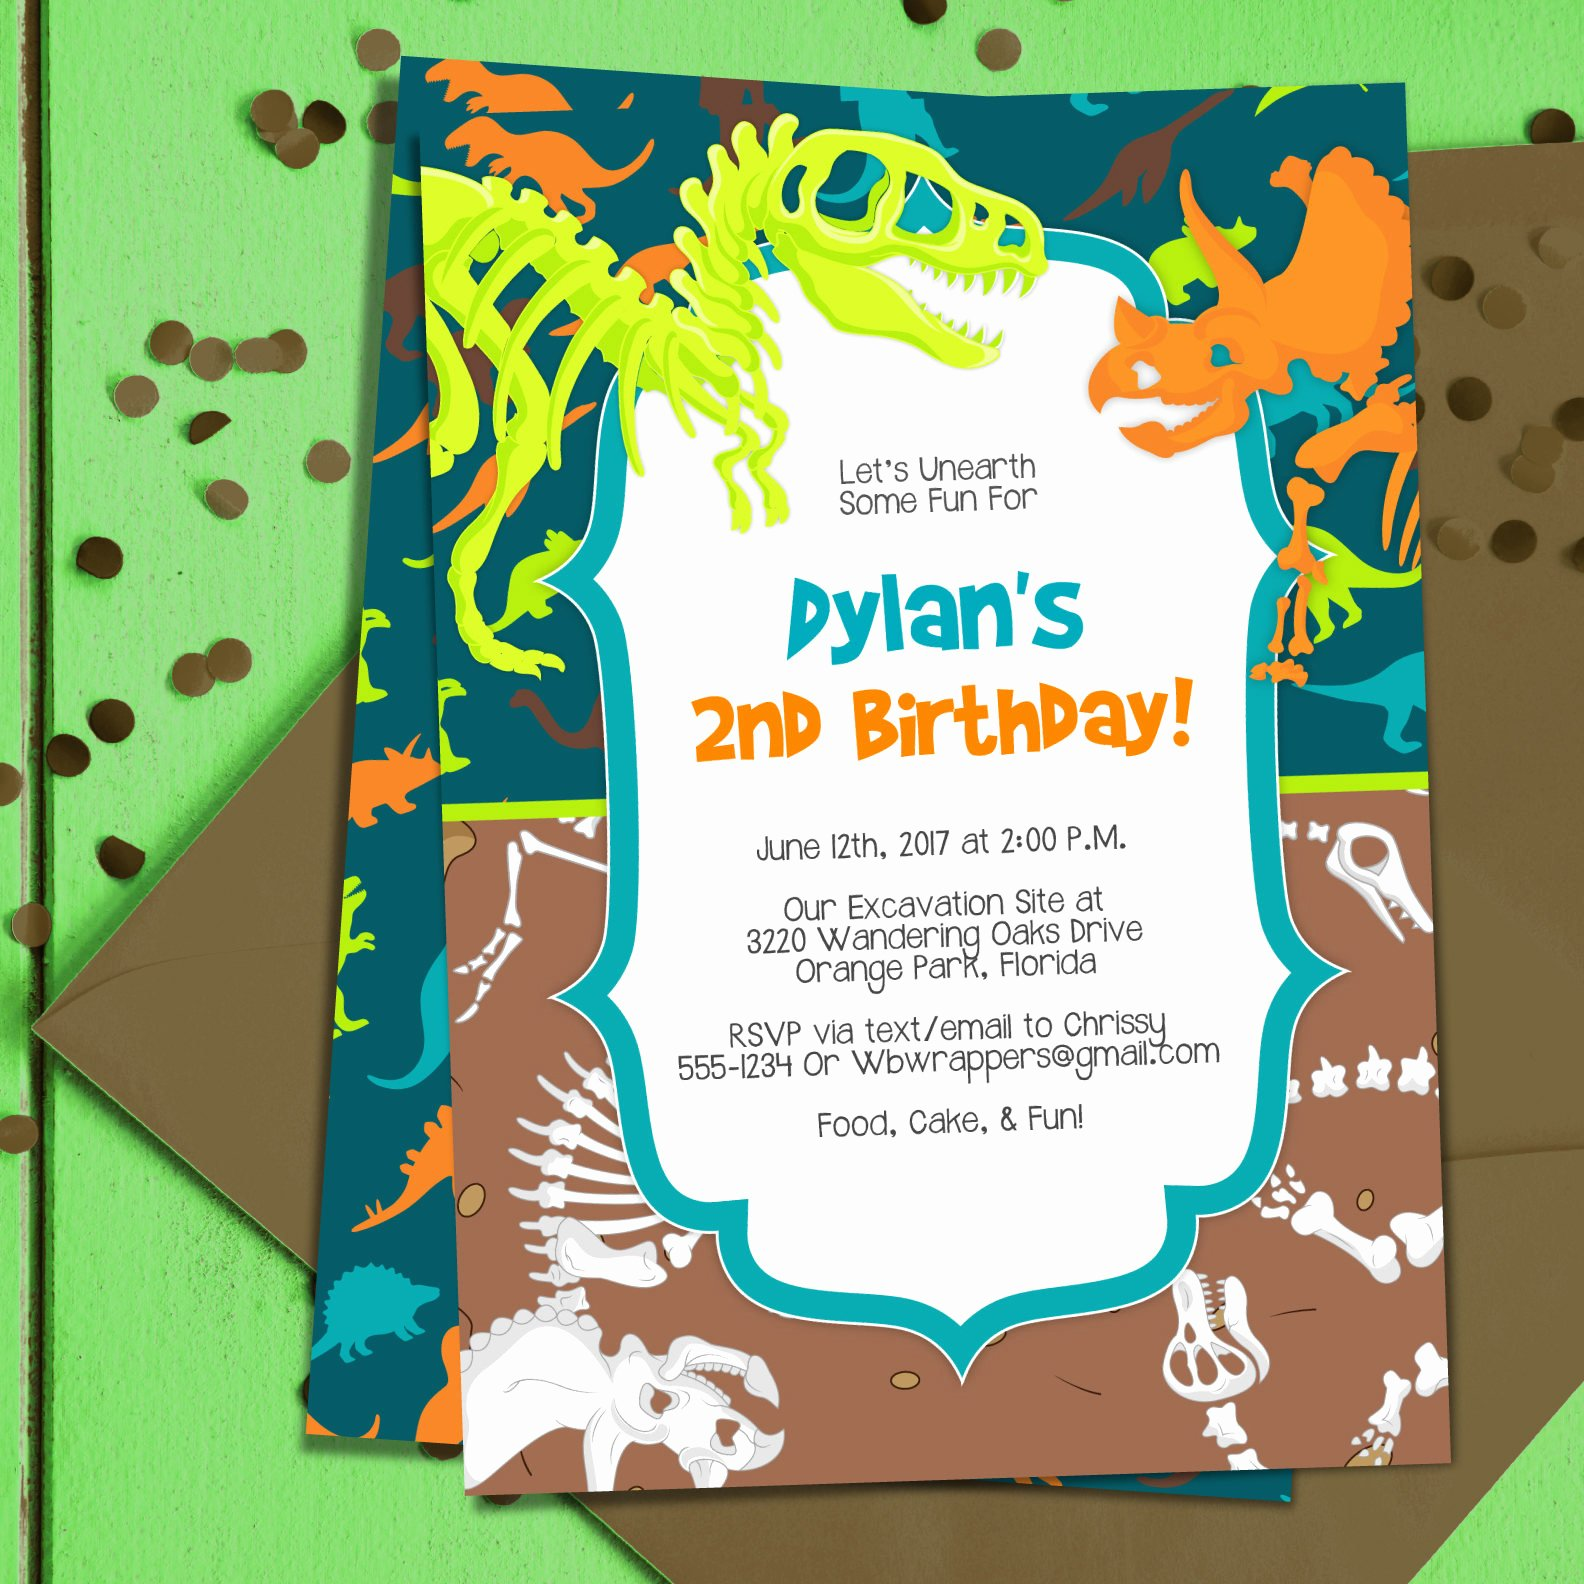 Dinosaur Birthday Party Invitations Unique Dinosaur Dig Party Invitation Template Dino Skeleton and